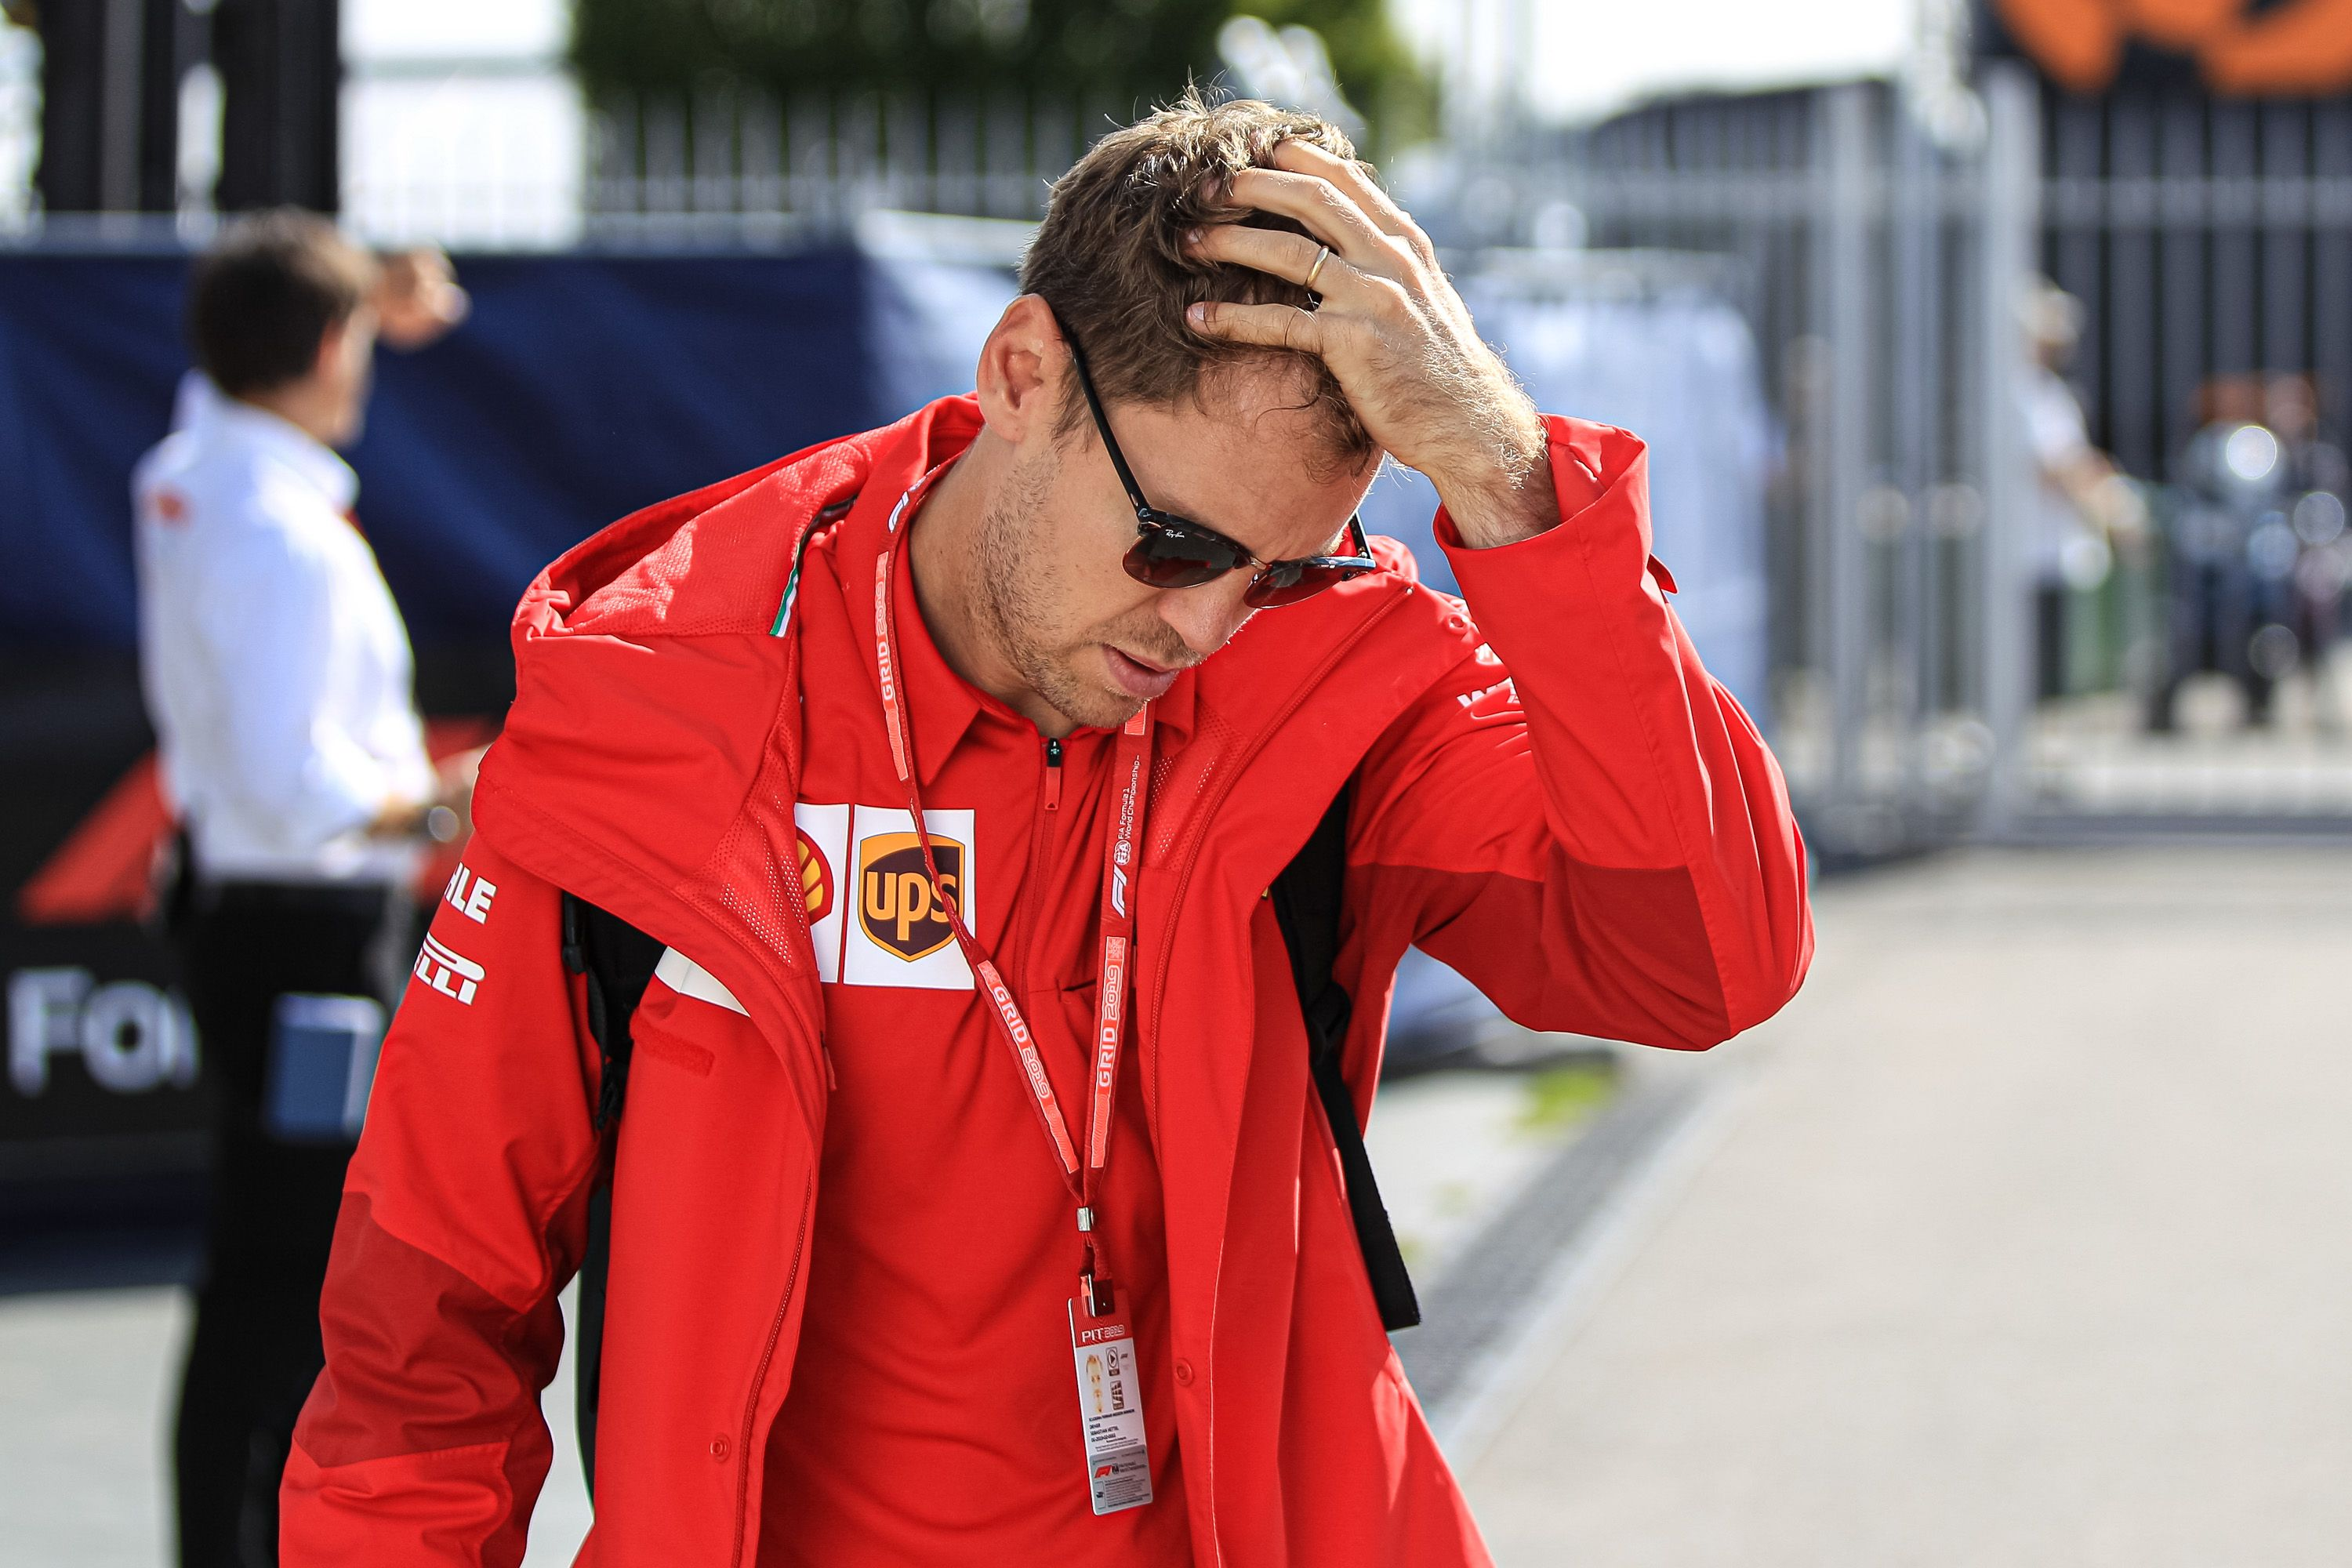 Sebastian Vettel S Statement On Why He S Leaving Ferrari F1 No Longer A Common Desire To Stay Together